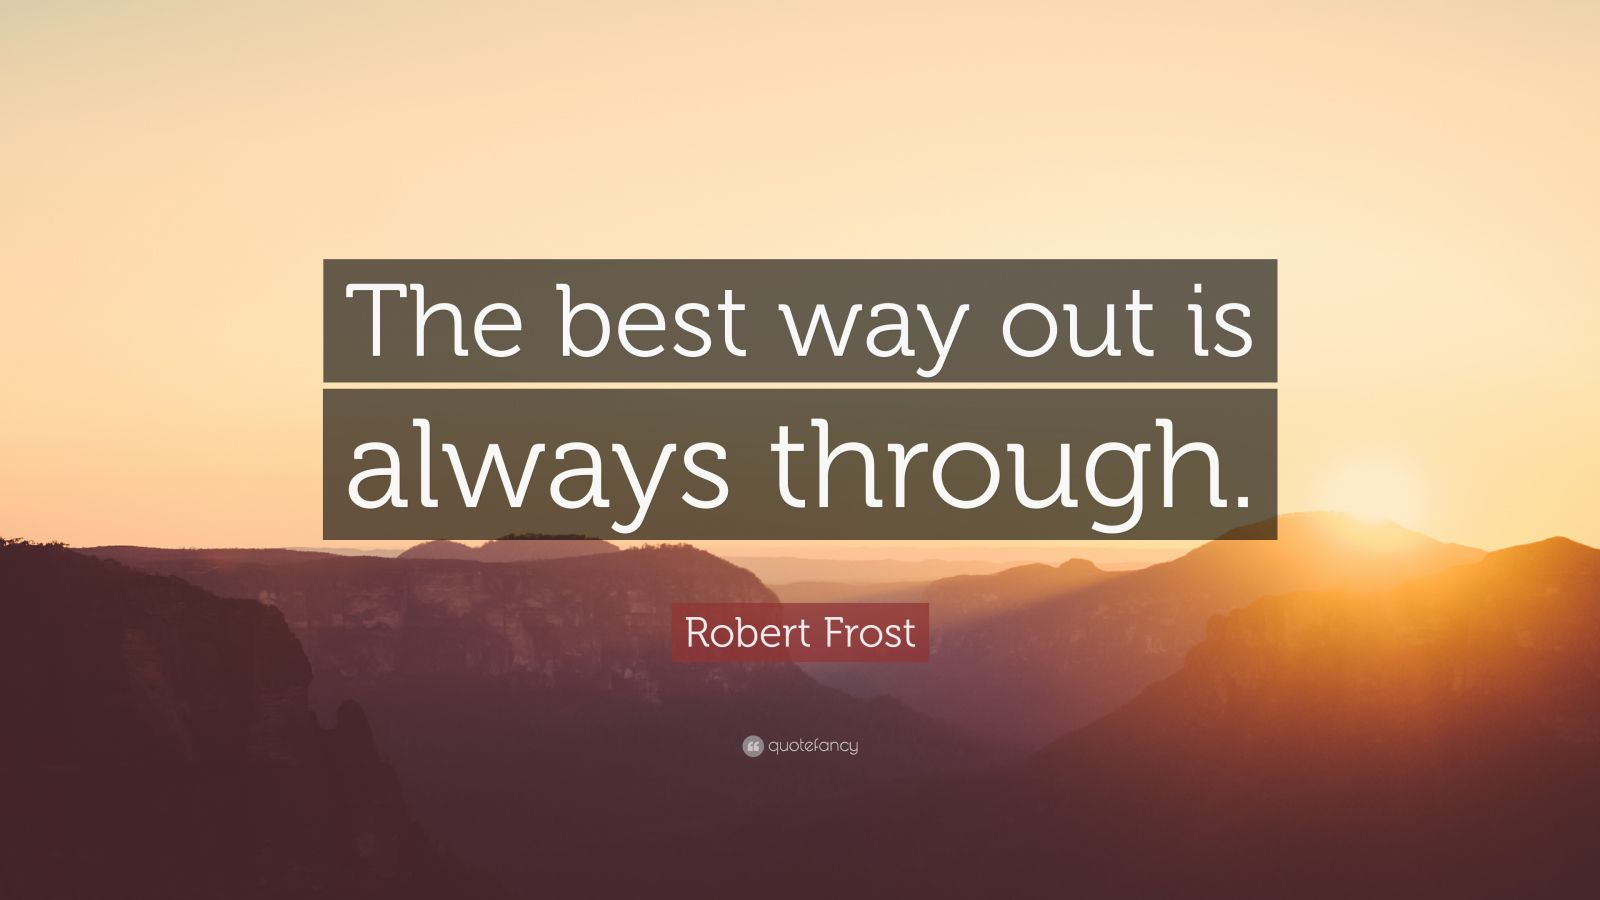 tone out out robert frost Out, out by robert frost robert lee frost (march 26  and the writer's tone is one of blame toward the observer as the one to blame for the tragedy.